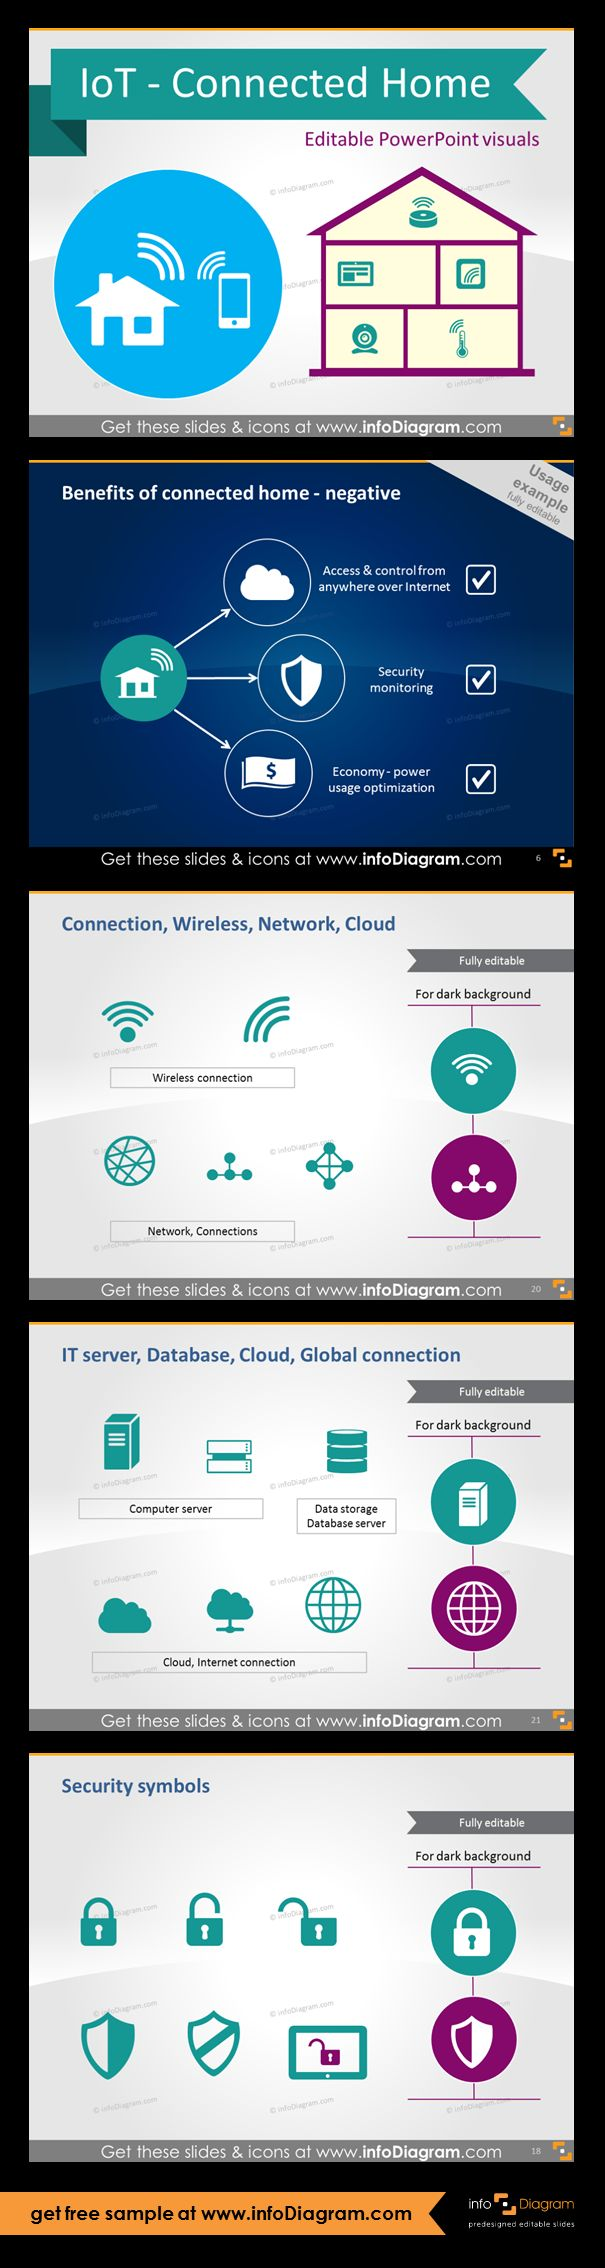 IoT - Connected home graphics. Connection symbols: Wireless, Wi-Fi, network. IT server, Database, Cloud, Global connections, security and protection icons. Benefits of connected home usage example.